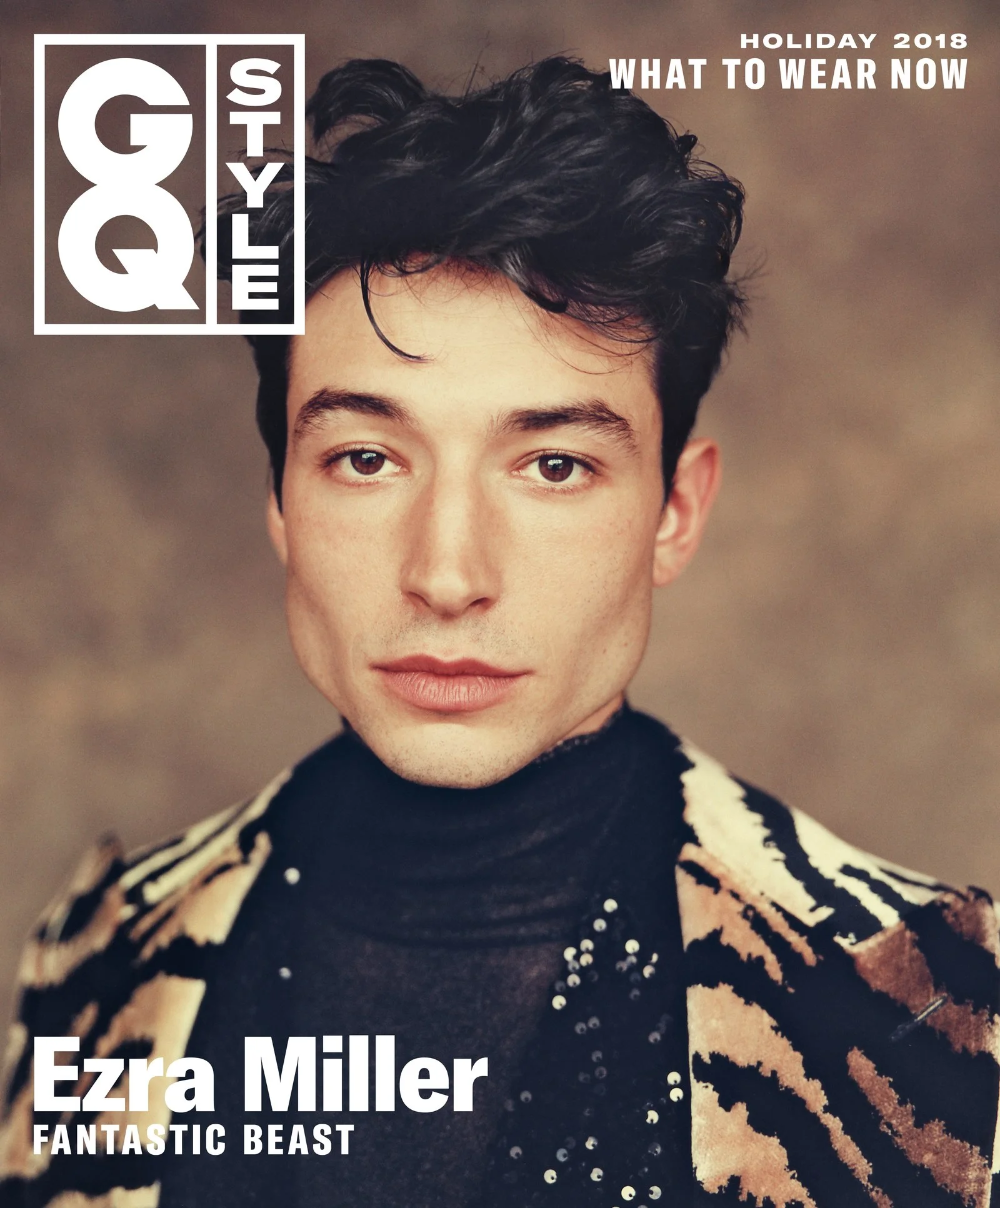 Ezra Miller Is the Gender-Bending, Goat-Delivering Hollywood Star of the Future #hollywoodstars